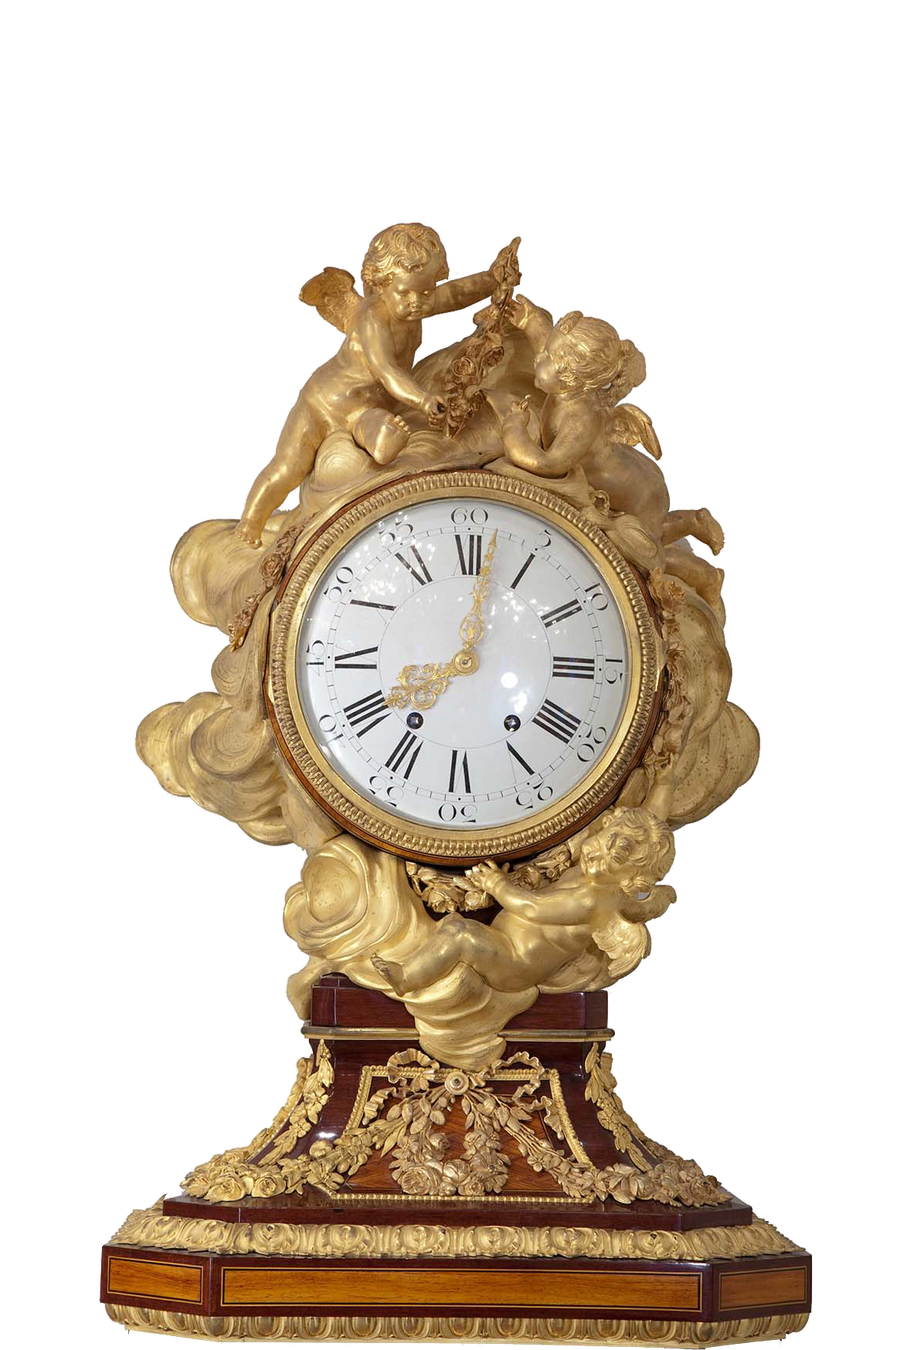 antique clock png by camelfobia on DeviantArt